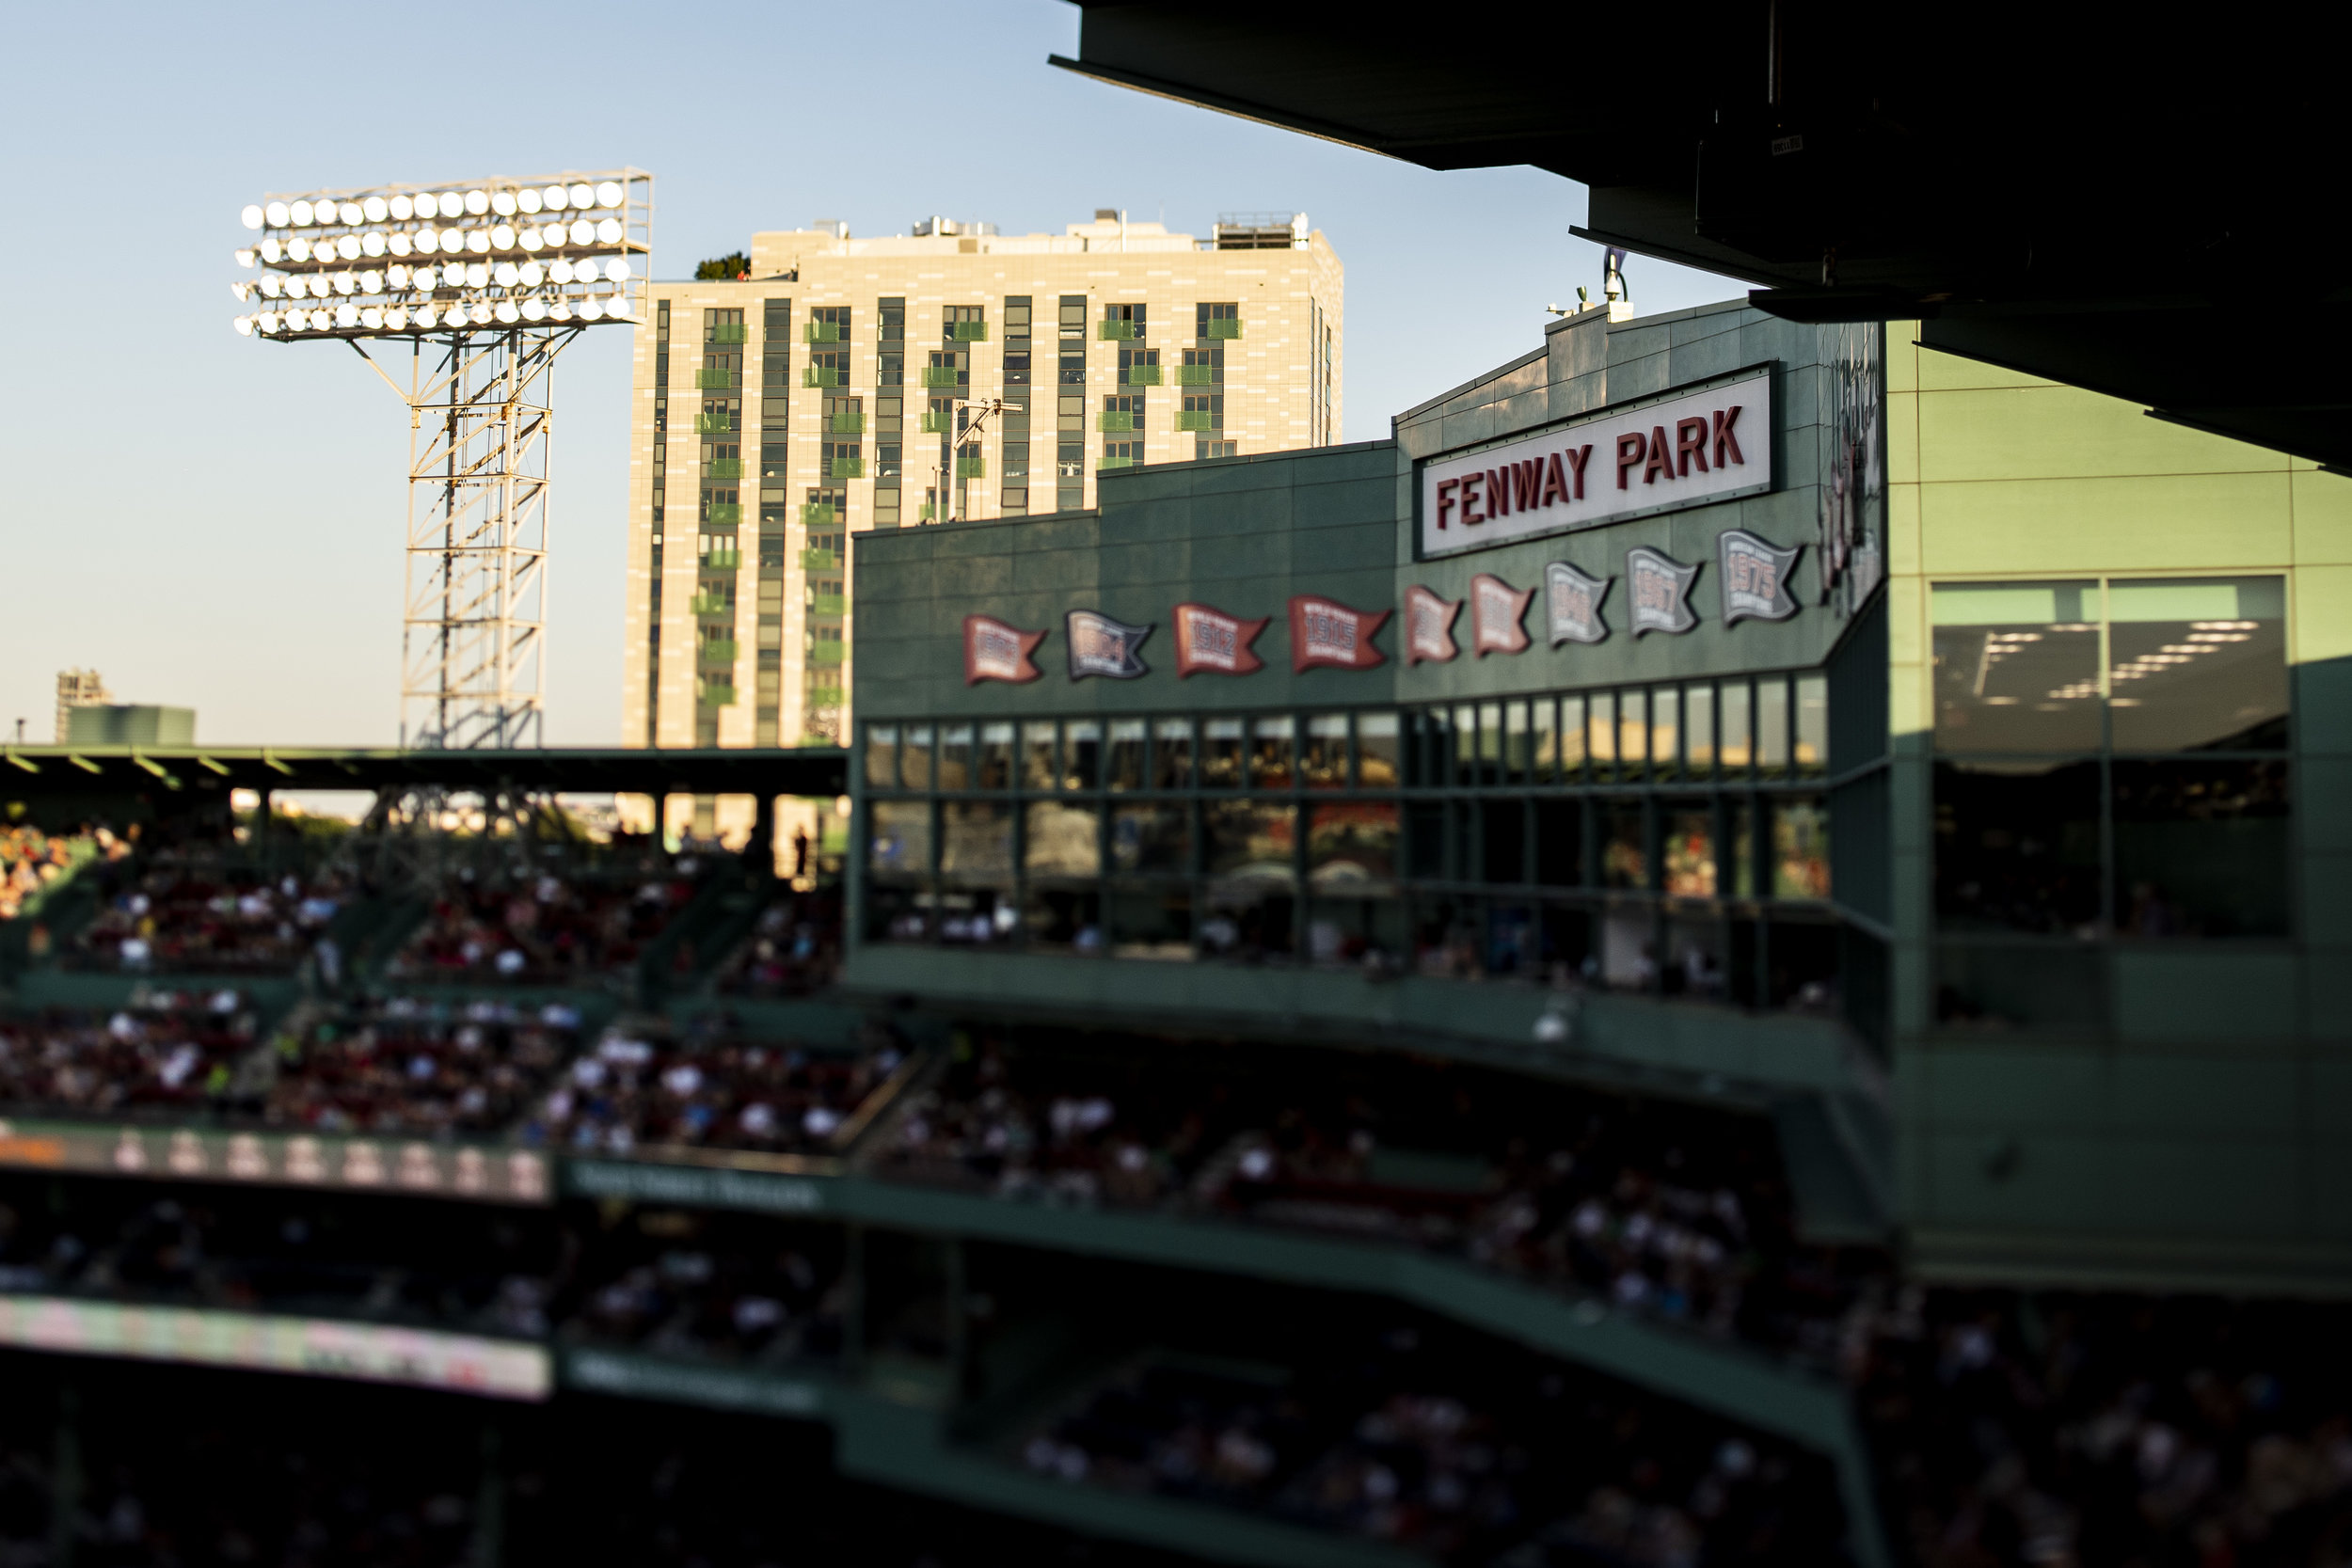 July 8, 2018, Boston, MA: The sun sets behind the facade  as the Boston Red Sox face the Texas Rangers Fenway Park in Boston, Massachusetts on Monday, July 9, 2018. (Photo by Matthew Thomas/Boston Red Sox)